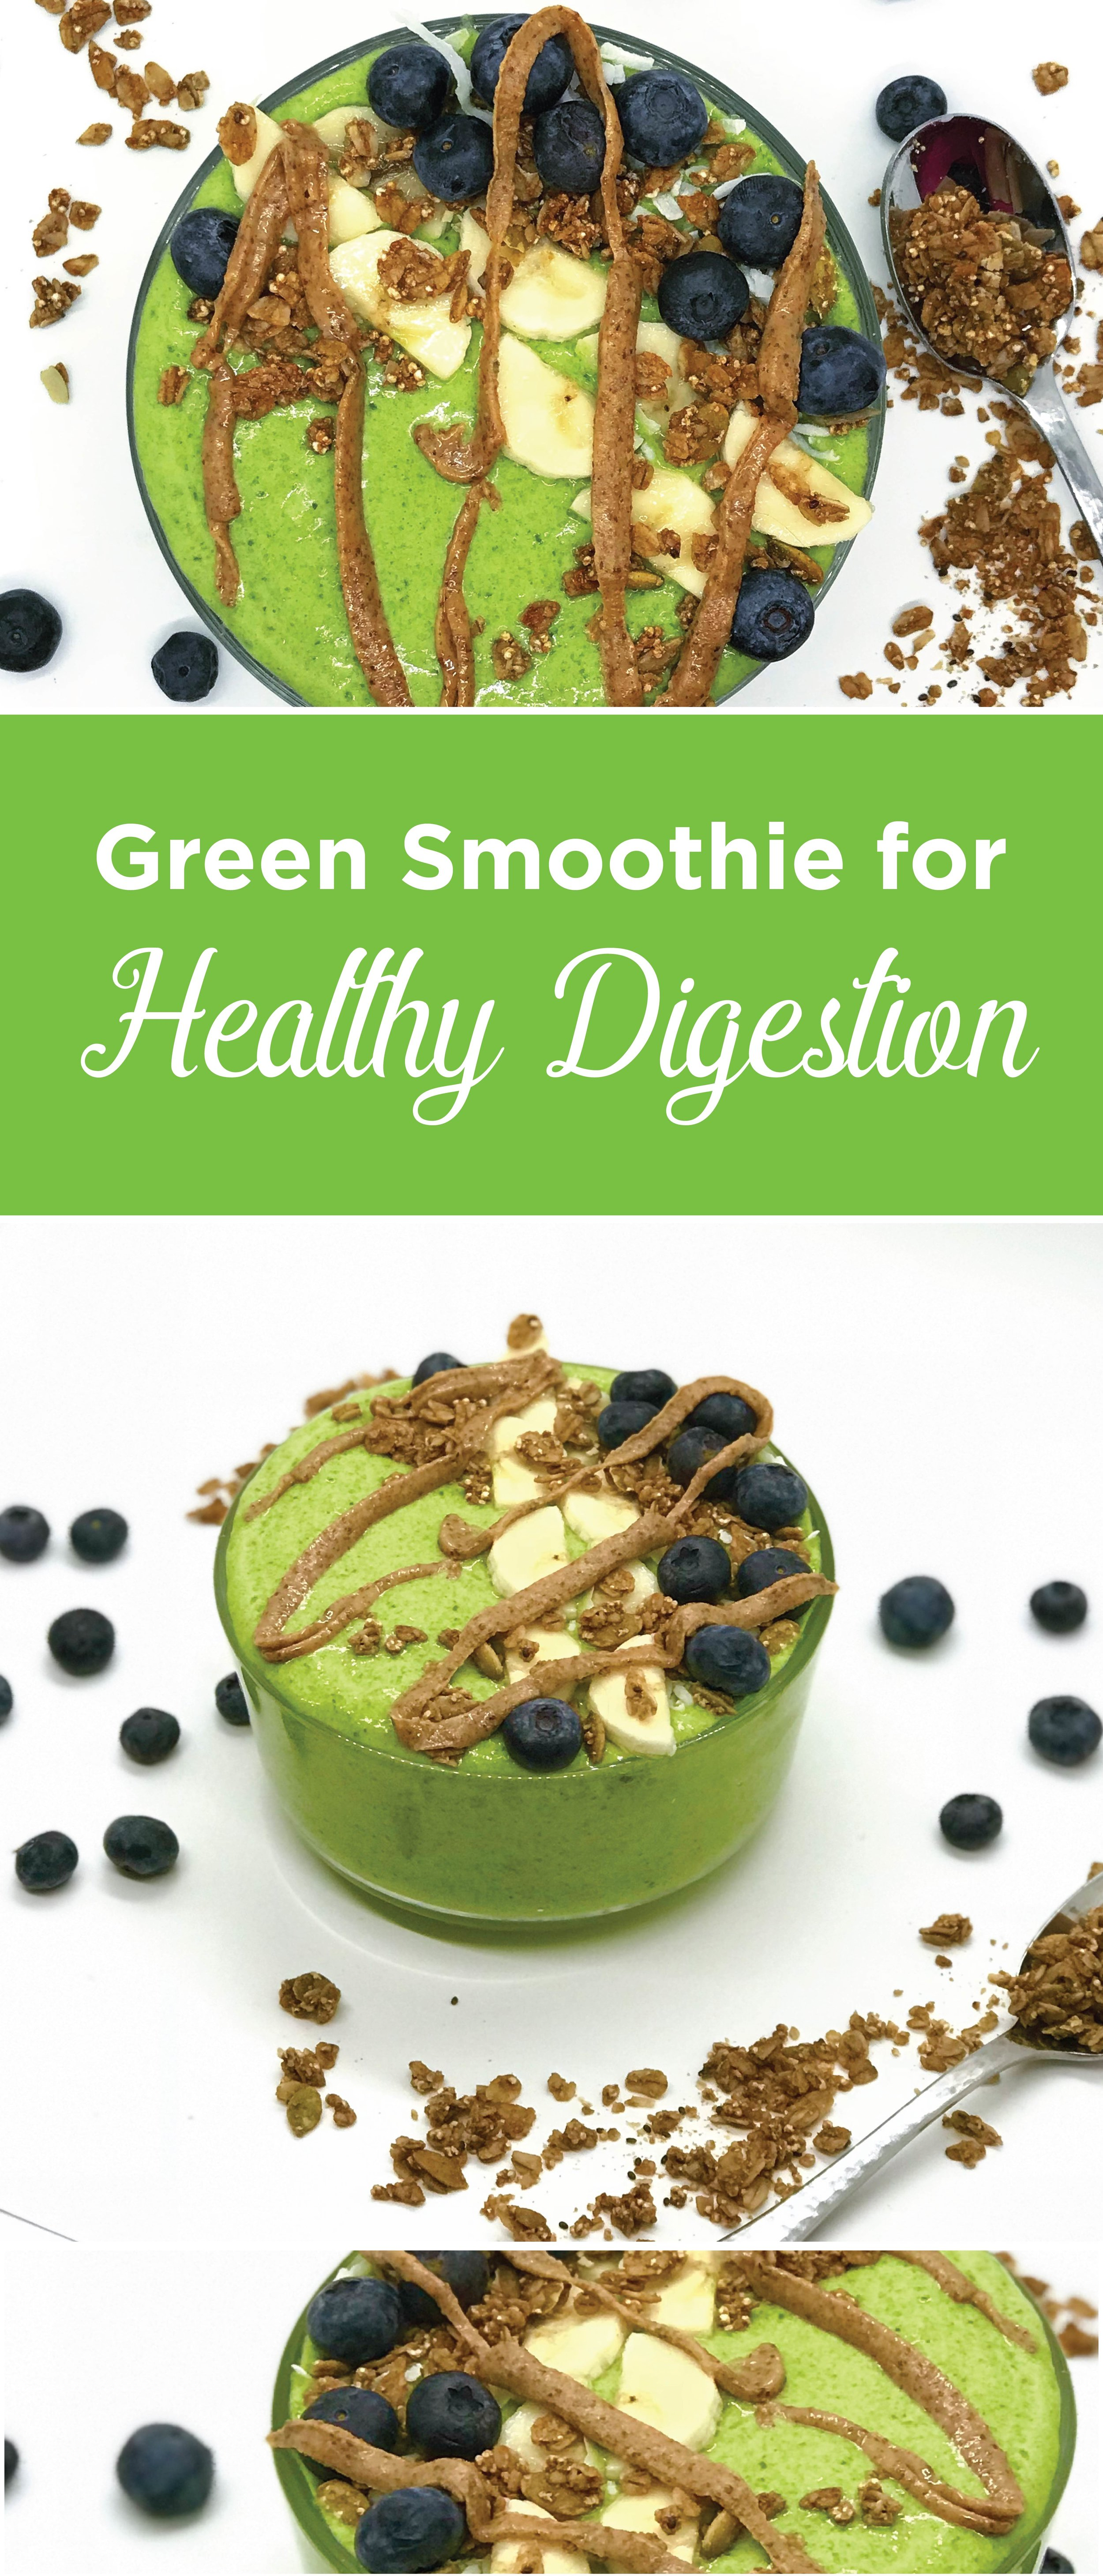 Green smoothie to heal your gut, lose weight, and boost your metabolism. It is packed with ingredients for a healthy digestion!